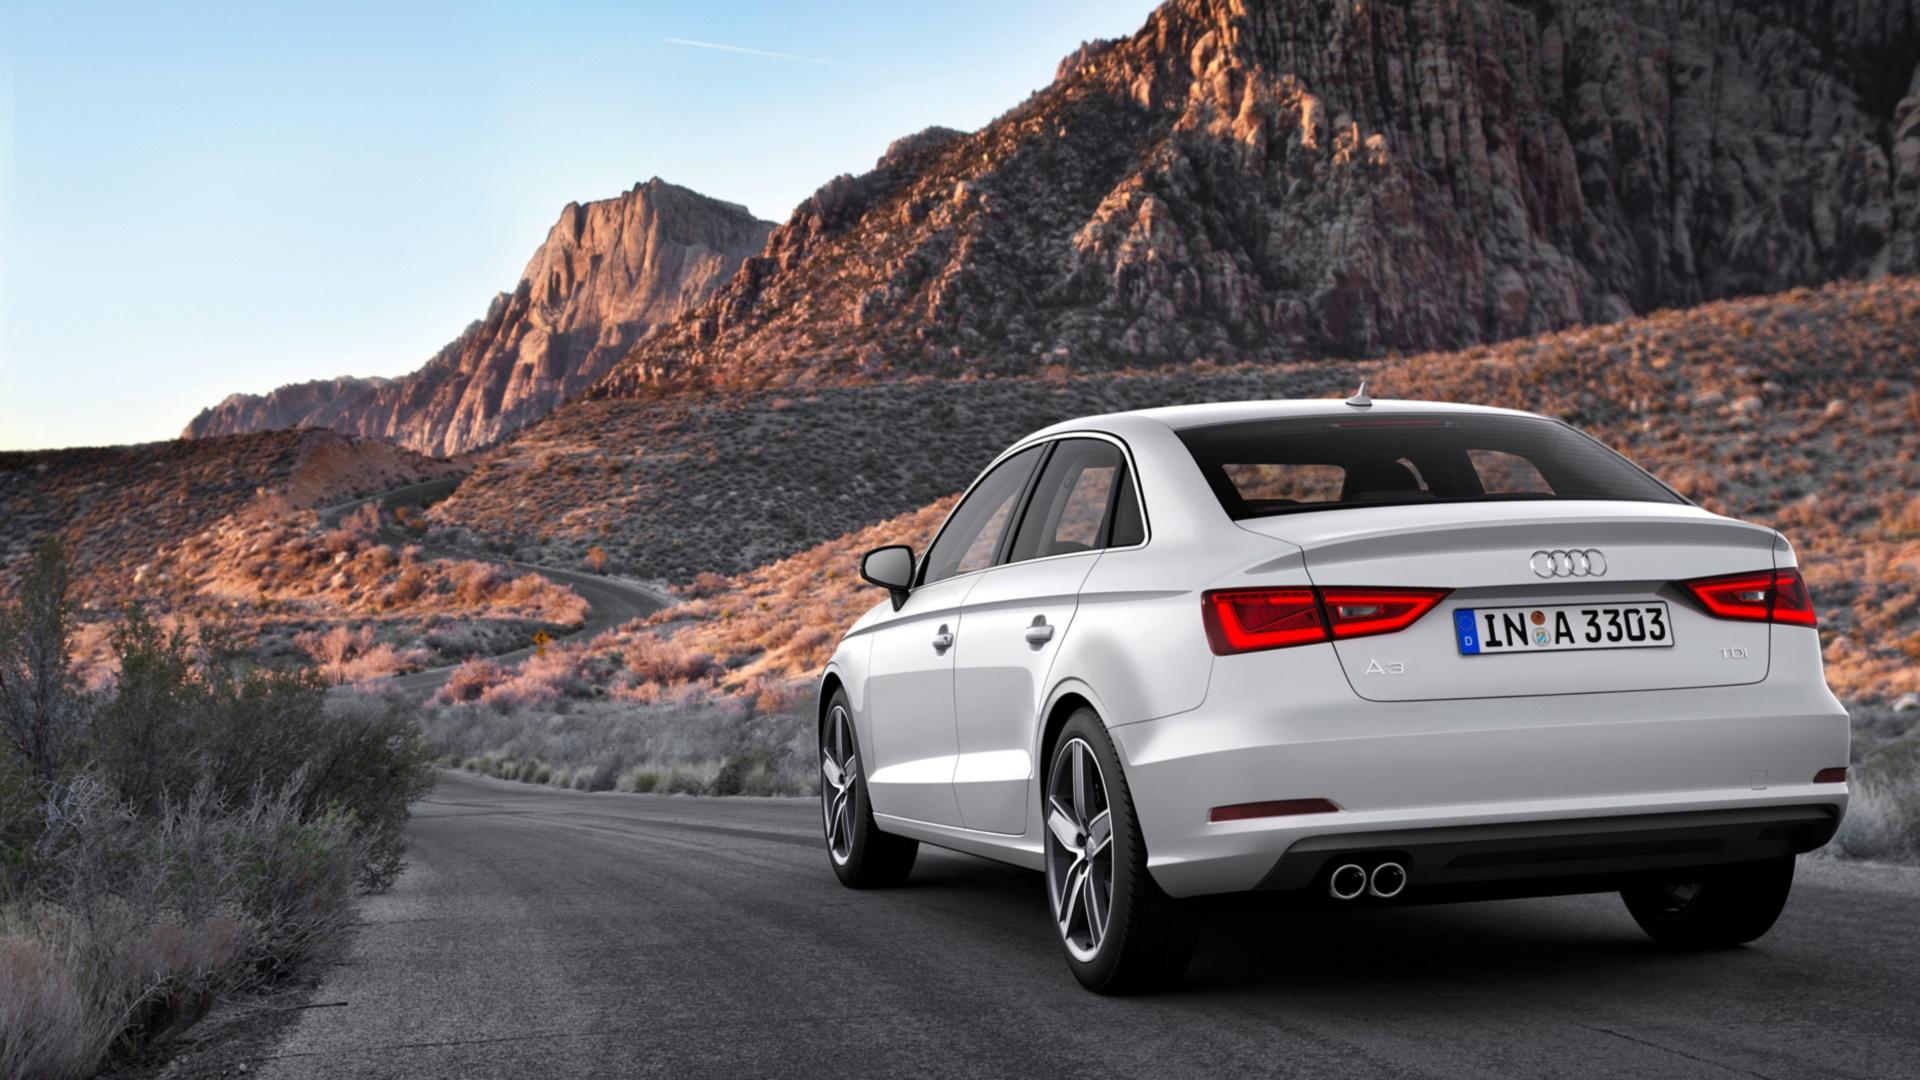 2015 Audi A3 Wallpapers HD Download